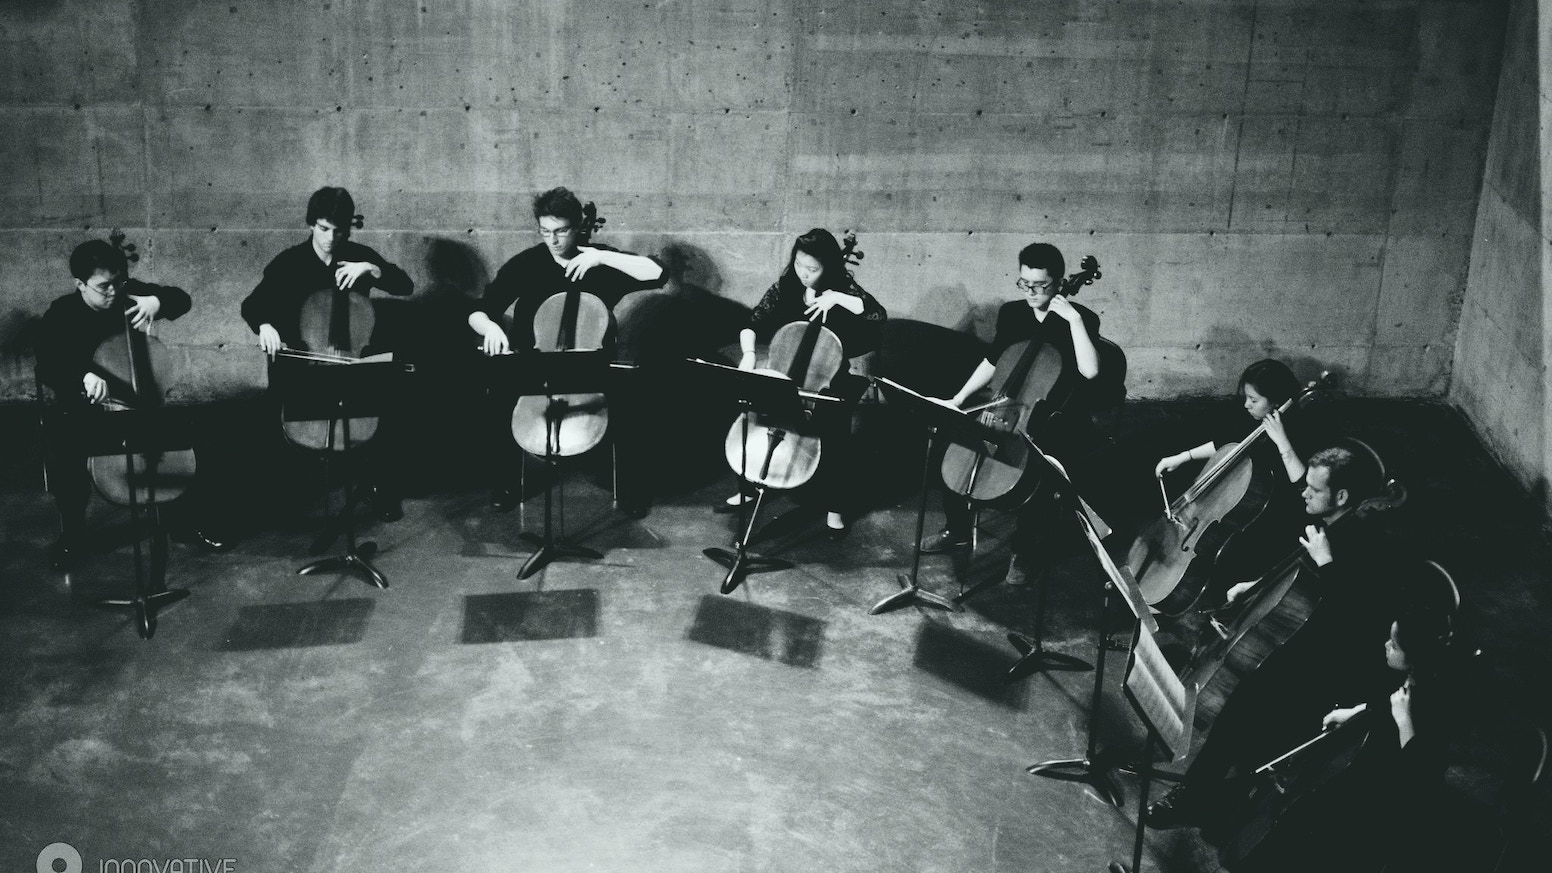 12 cellists, one debut album - featuring a new piece for soprano and a dozen celli.